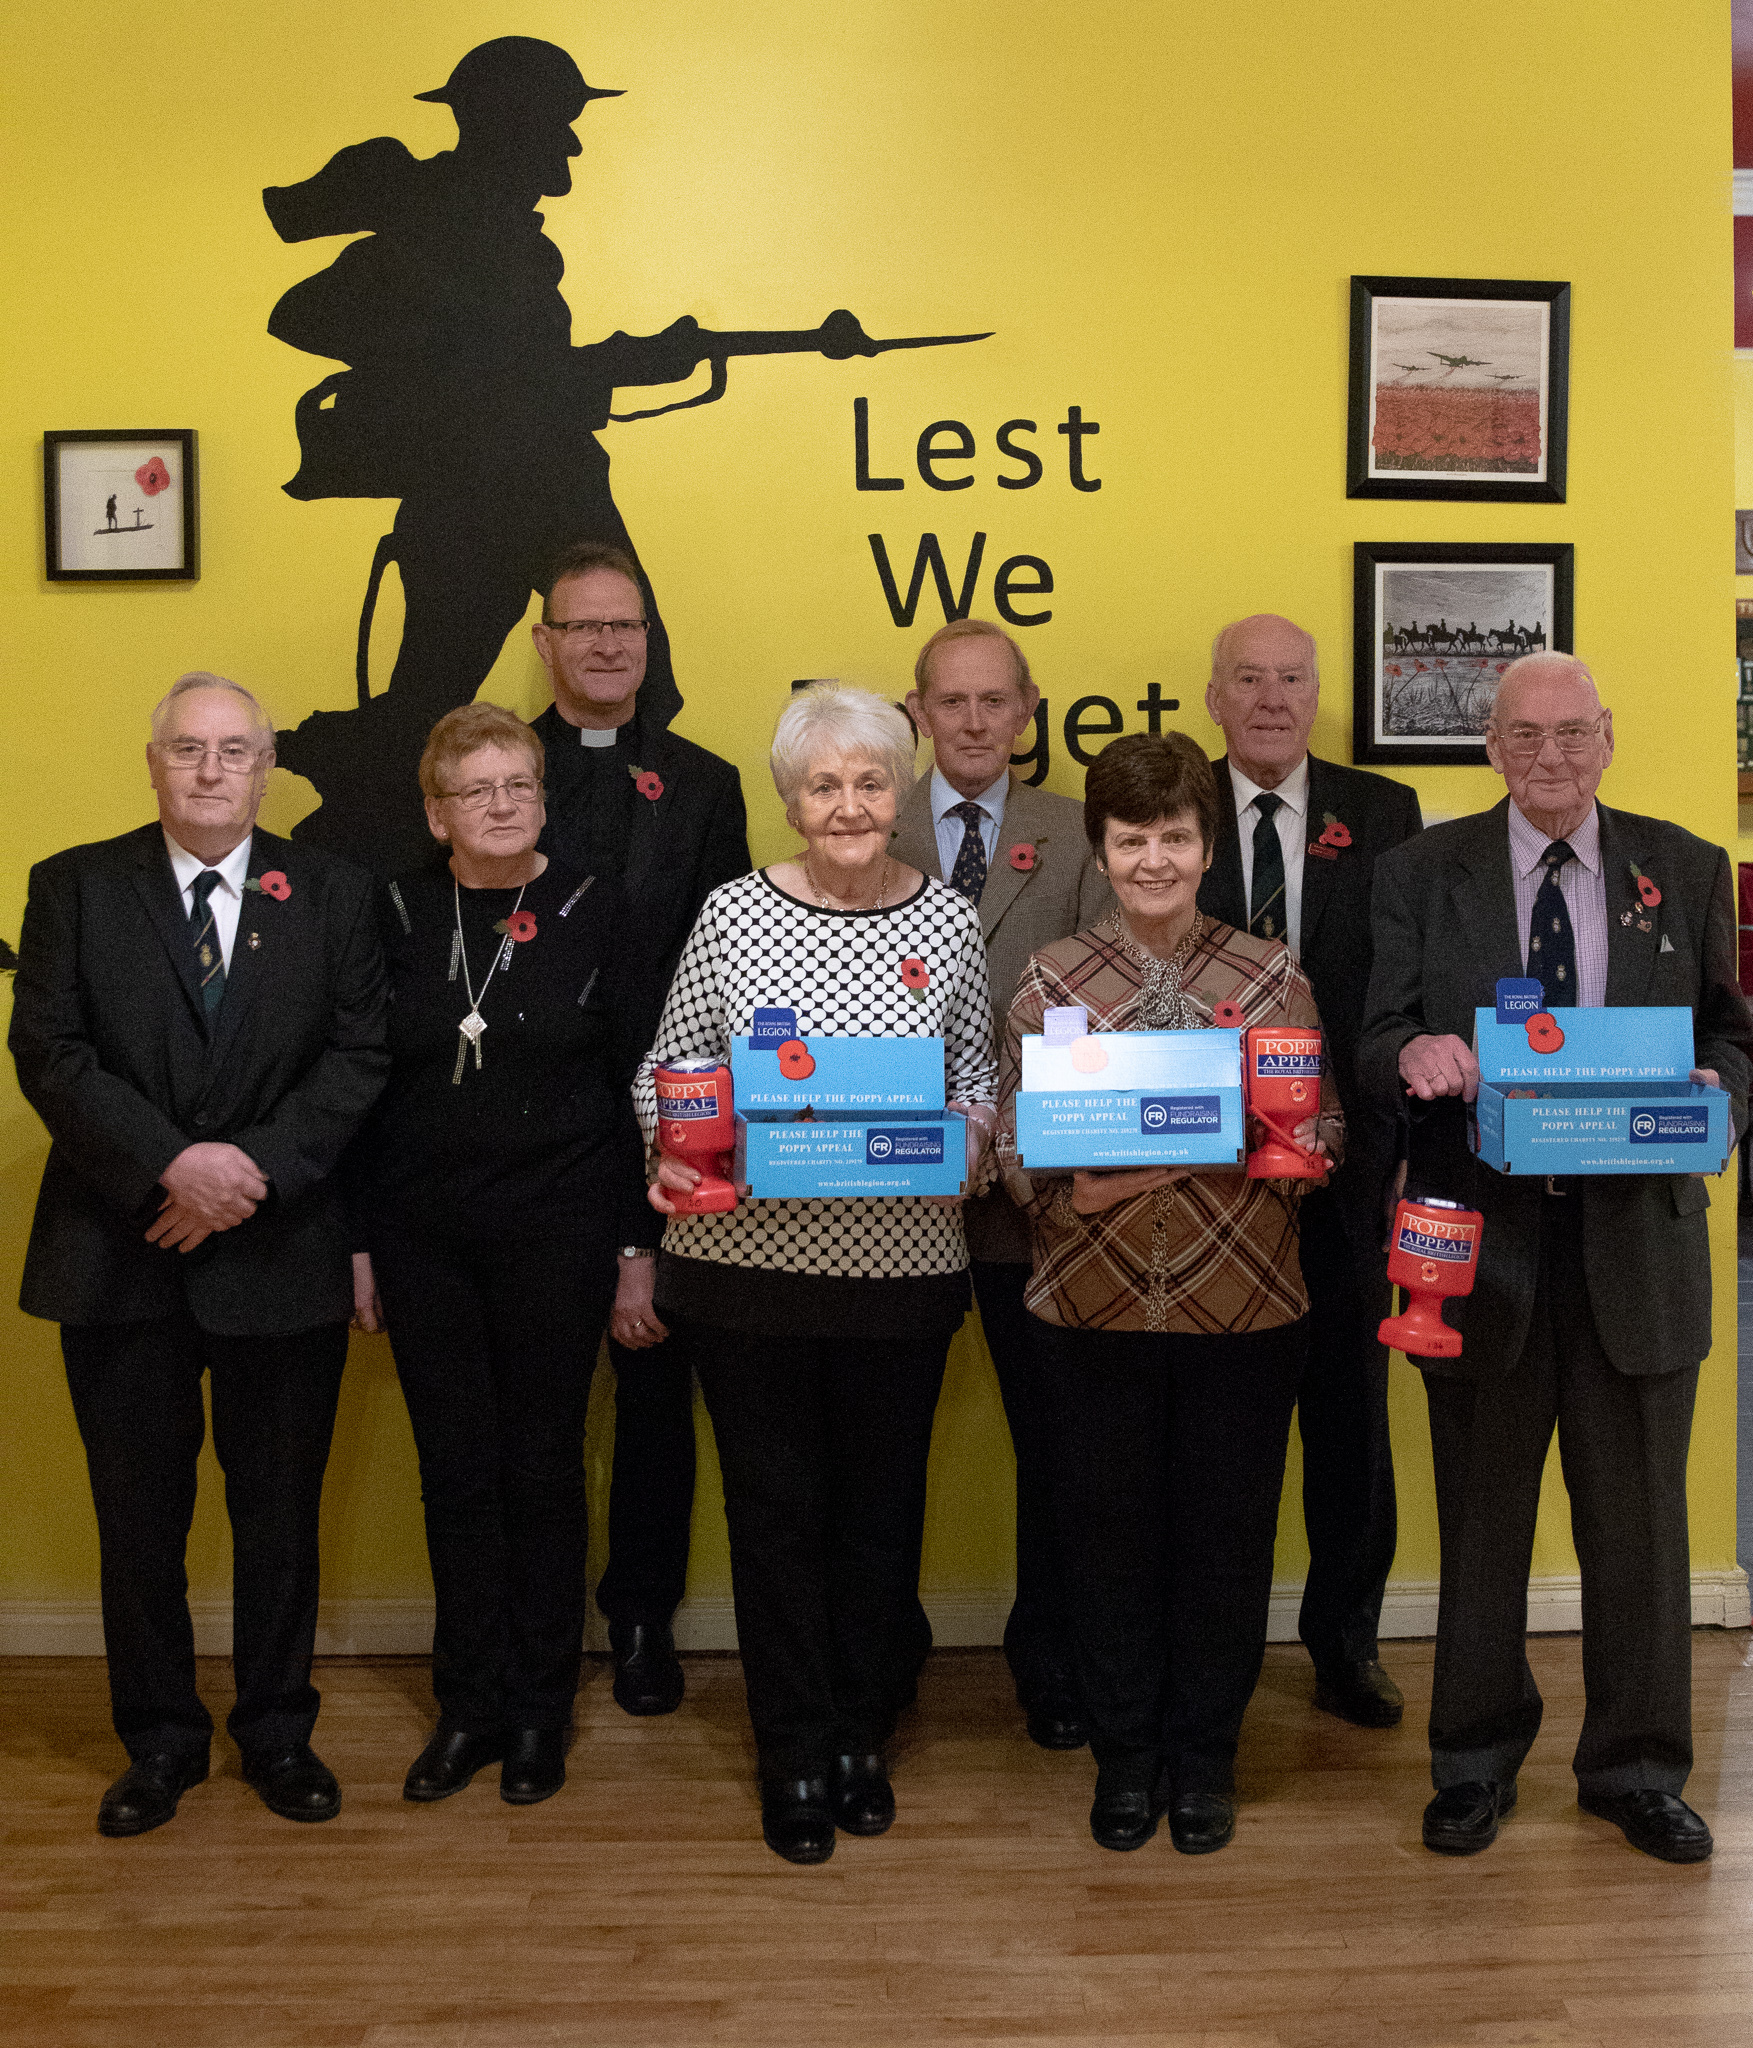 Pictured at the launch back (from left) Reverend Dean Hall, Lord Brookeborough and Billy Dixon organiser. Front (from left) John Jones, Chairman of Royal British Legion,Doreen Seaman, Myrtle Balfour, Sally Masterson and Will Gault.